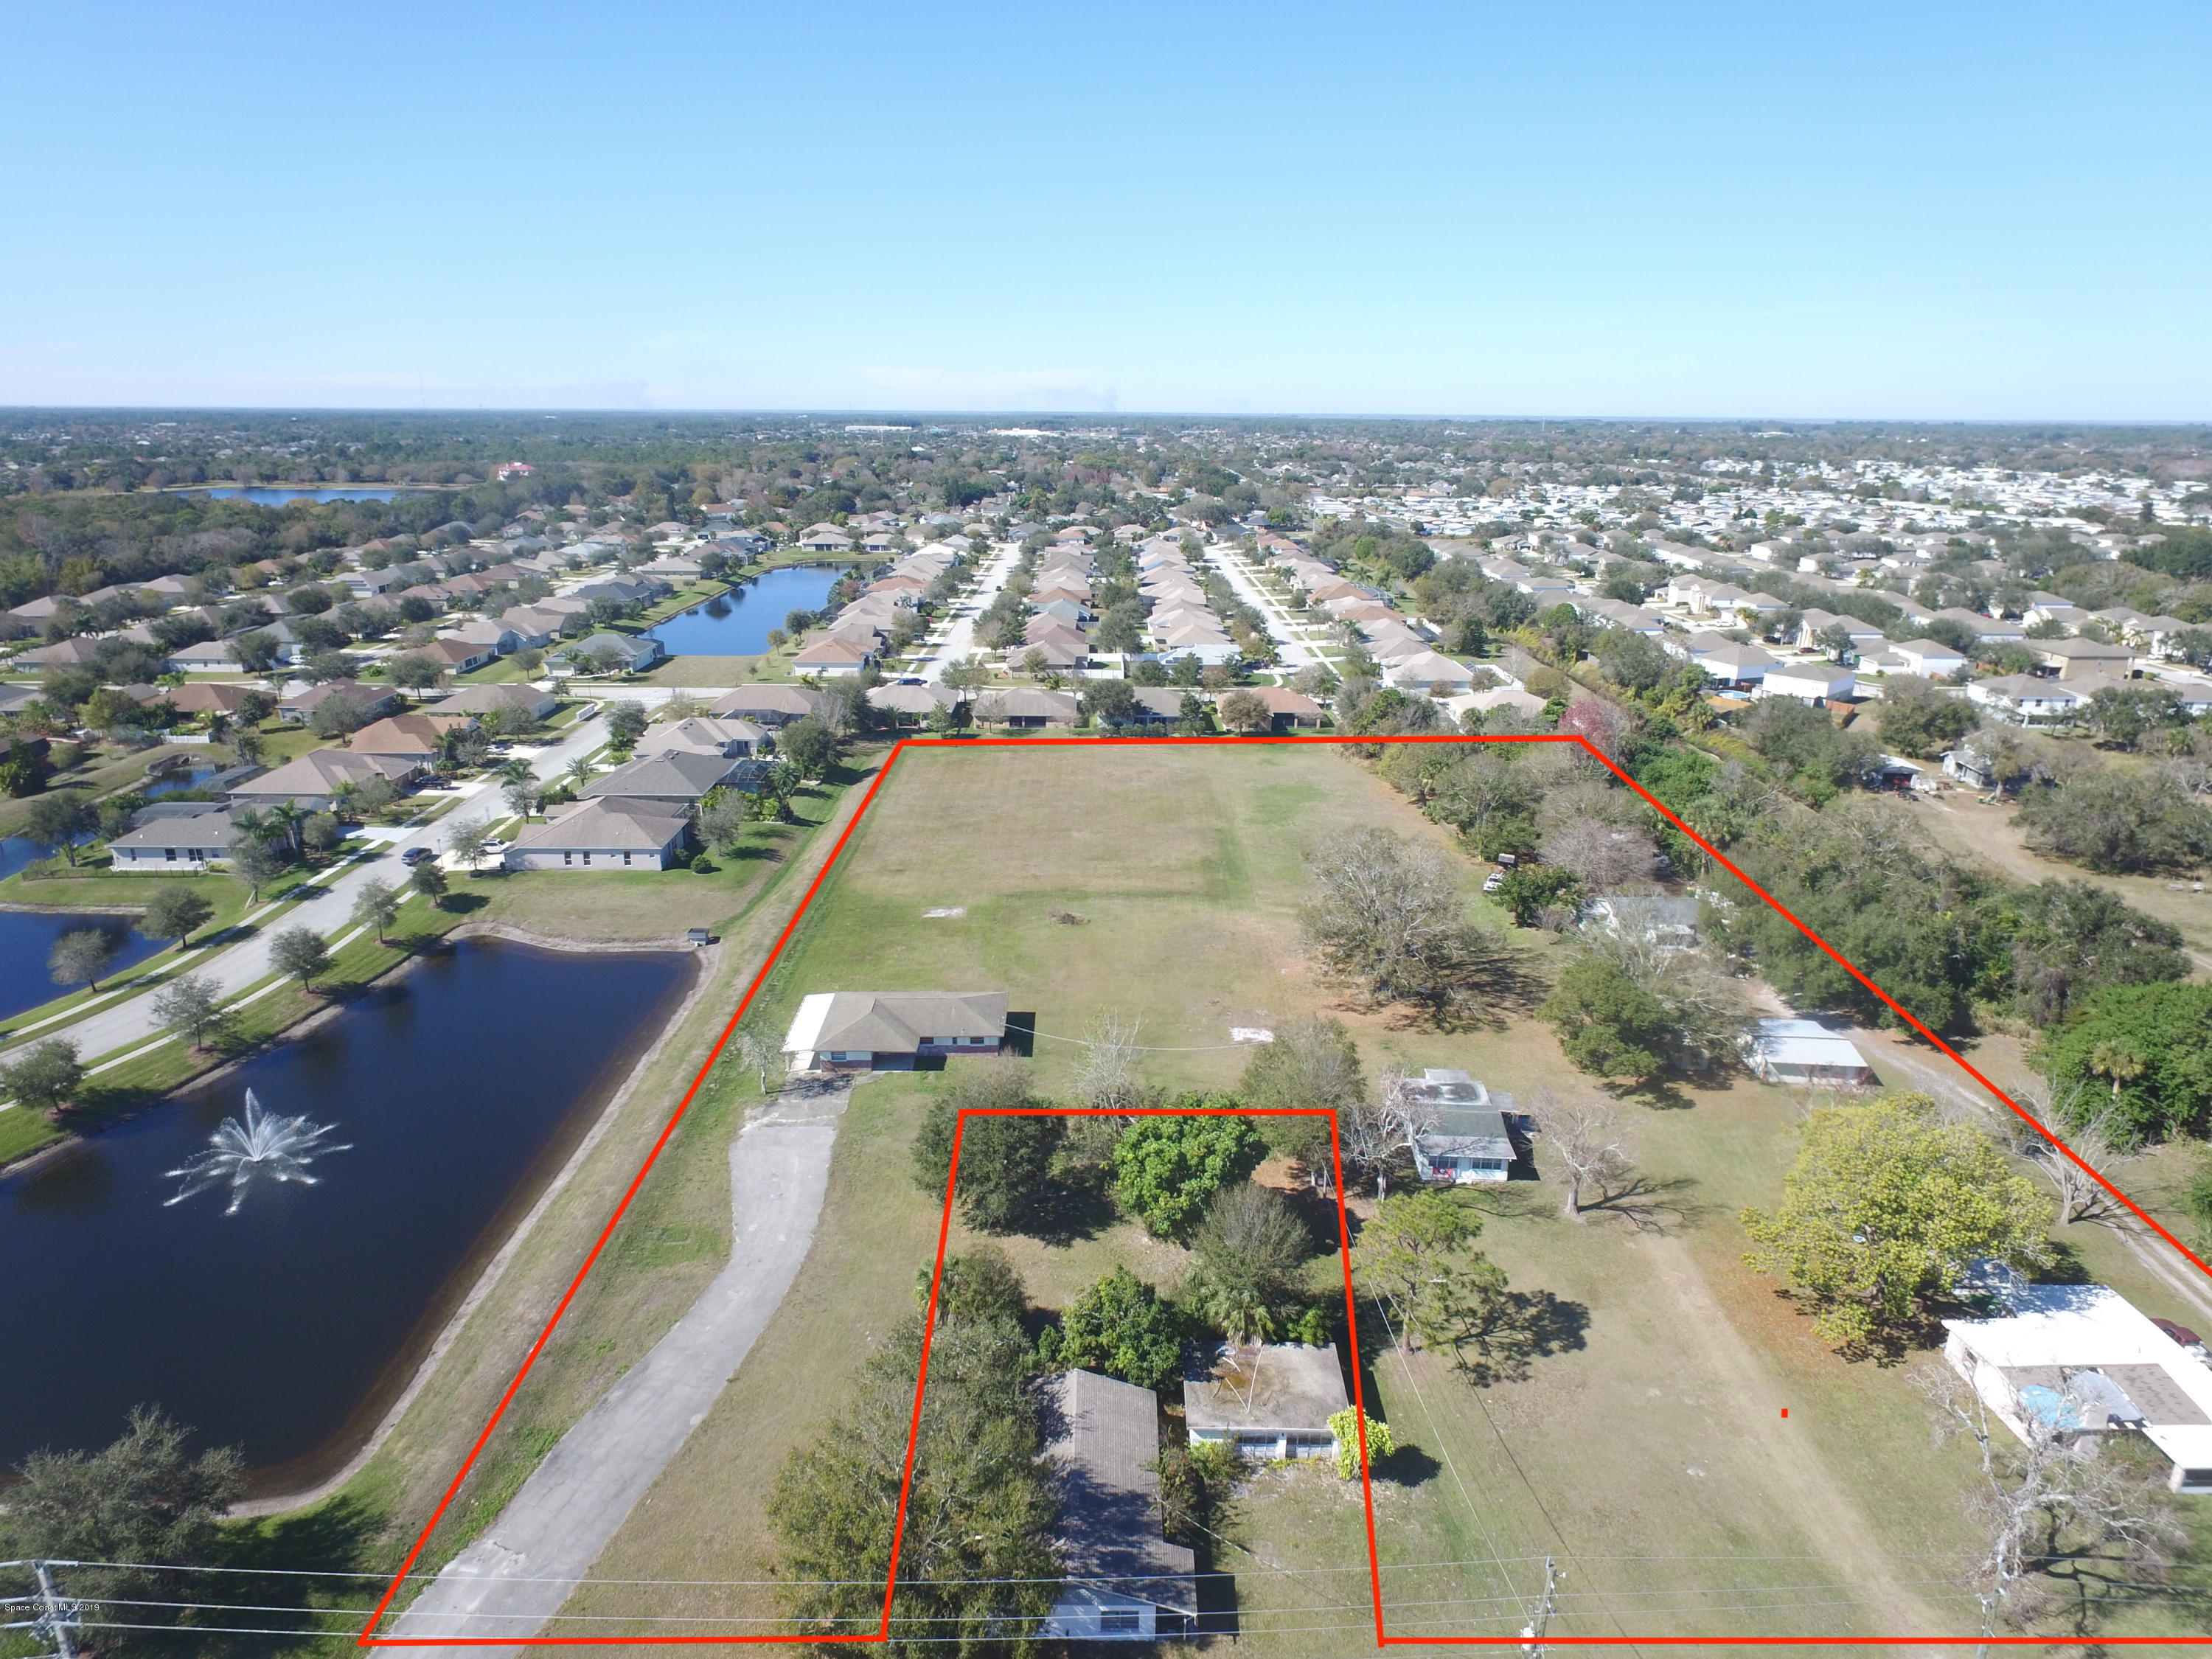 Land for Sale at 3030 3040, 3050 & 3090 Dairy 3030 3040, 3050 & 3090 Dairy Melbourne, Florida 32901 United States